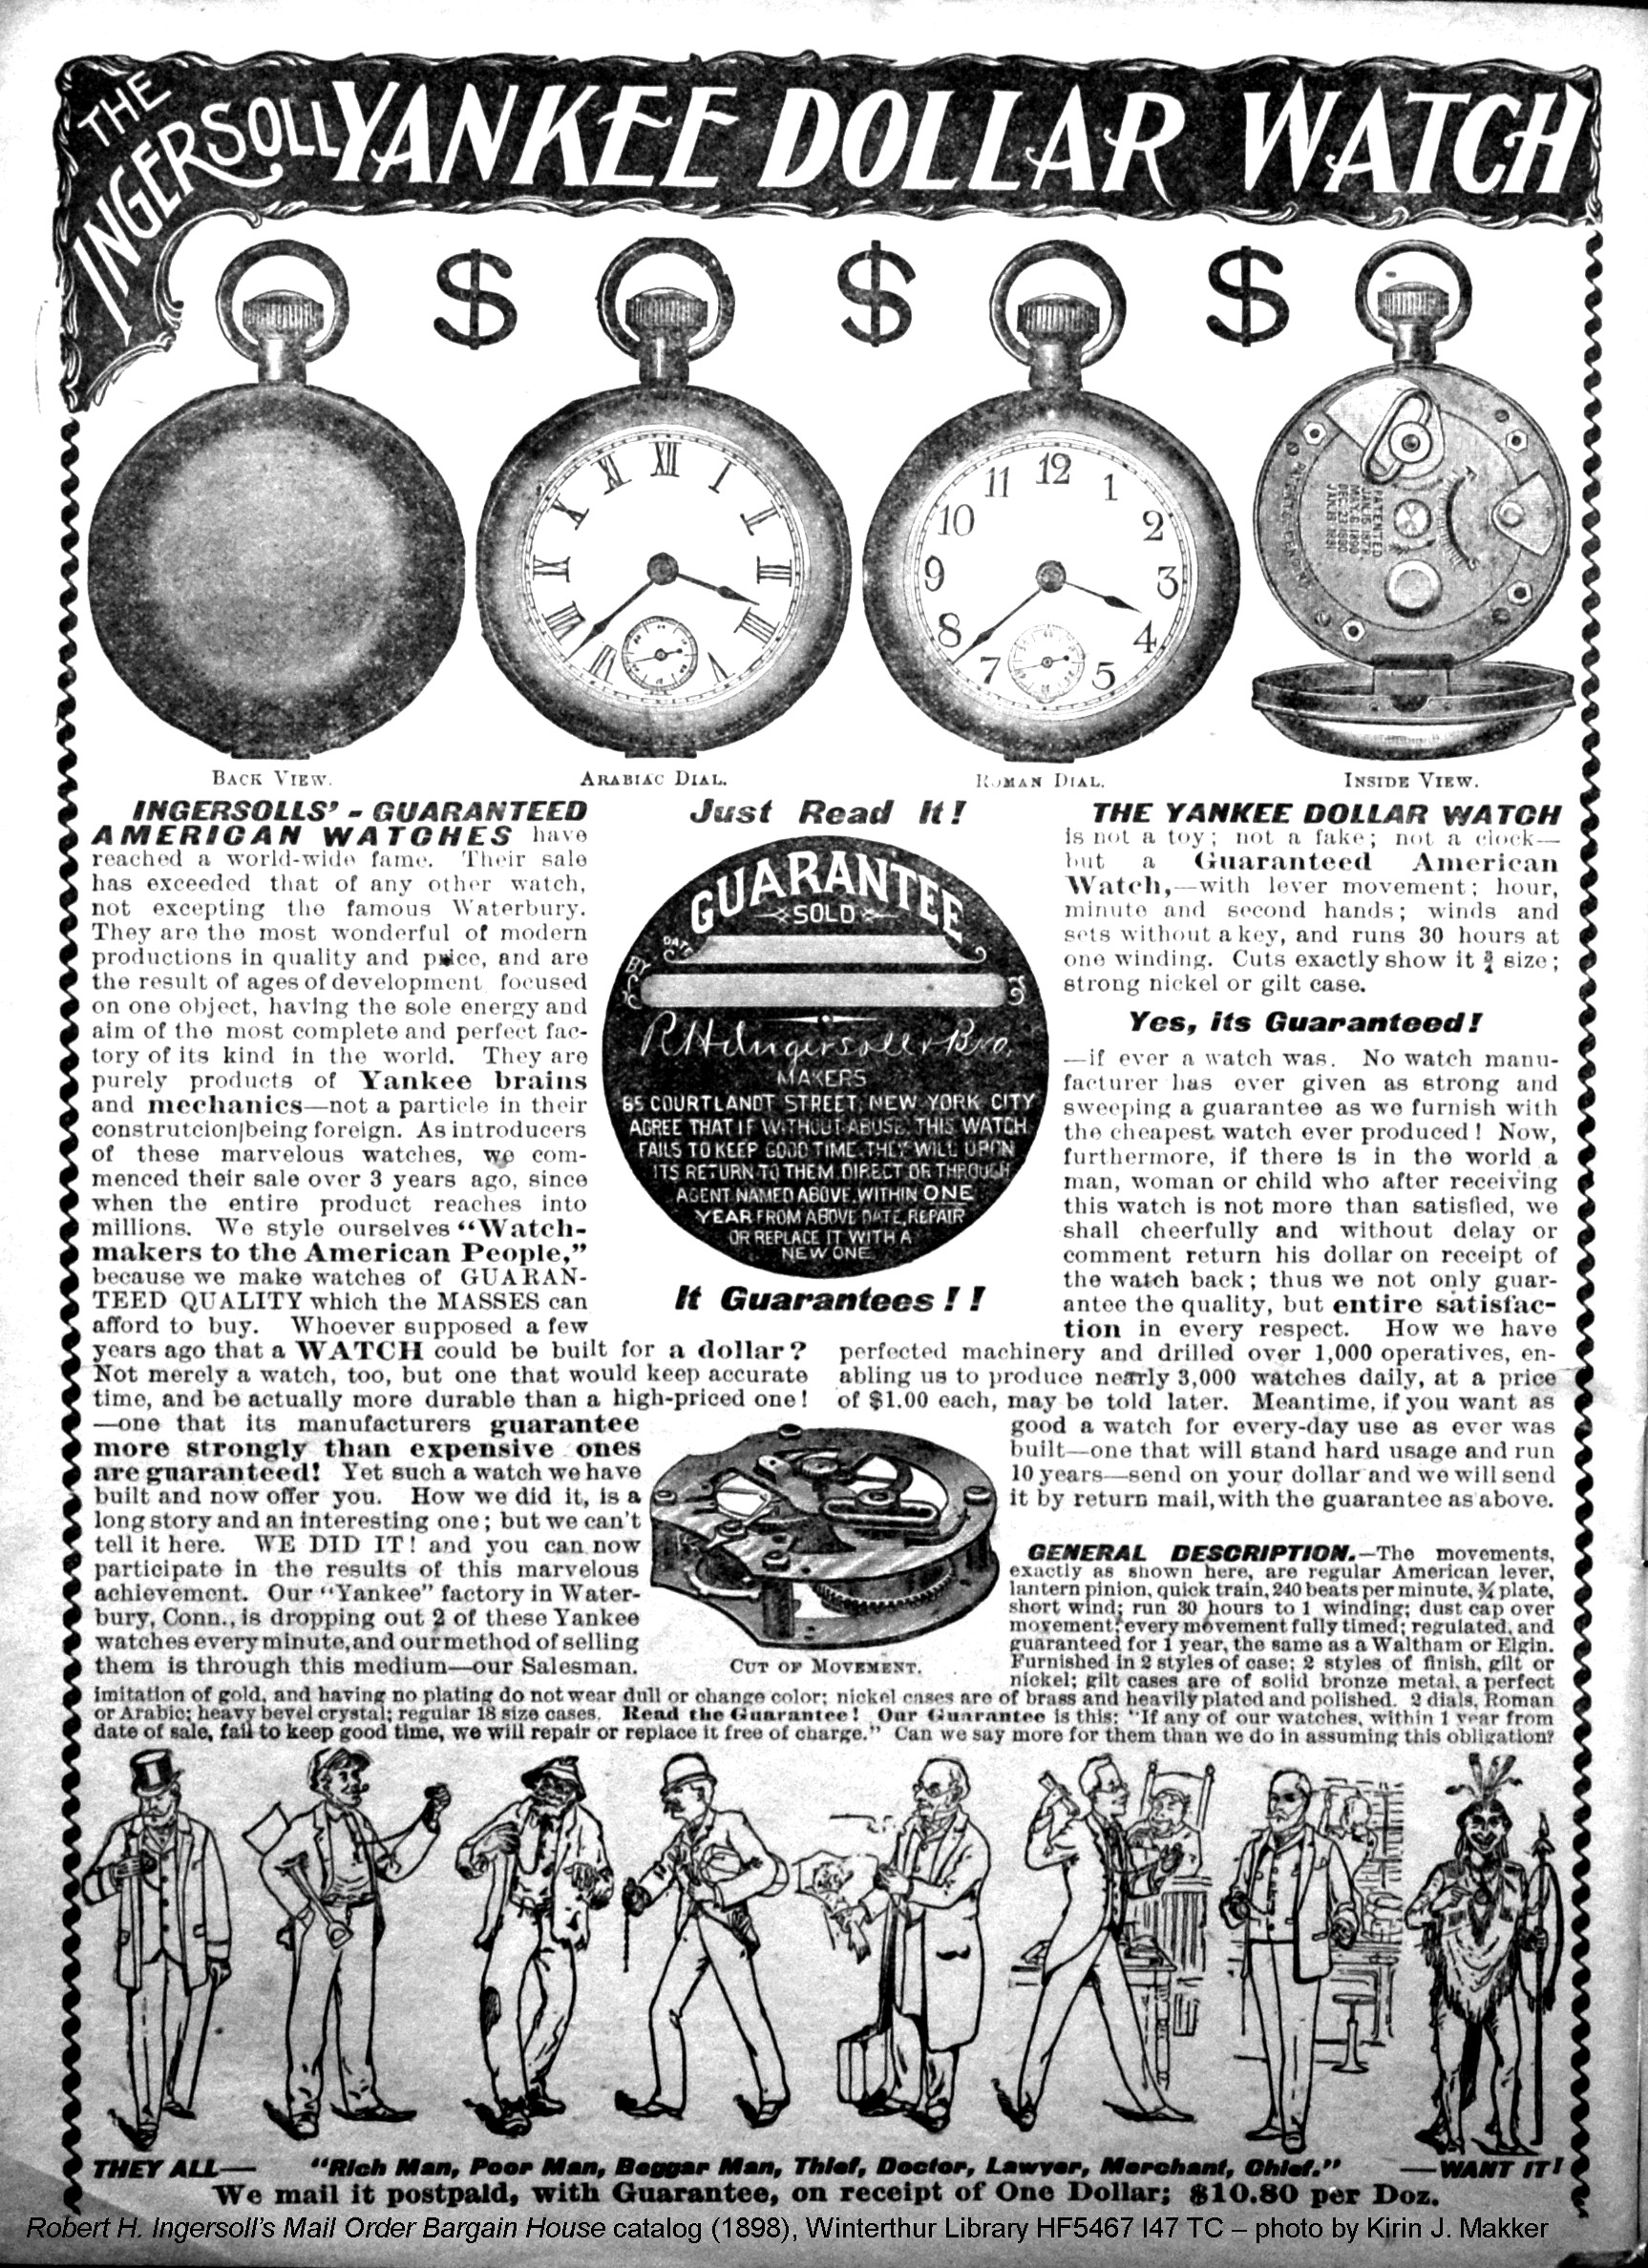 Full page ad for the Ingersoll Yankee Dollar Watch, from the Mail Order Bargain House catalog (1898)